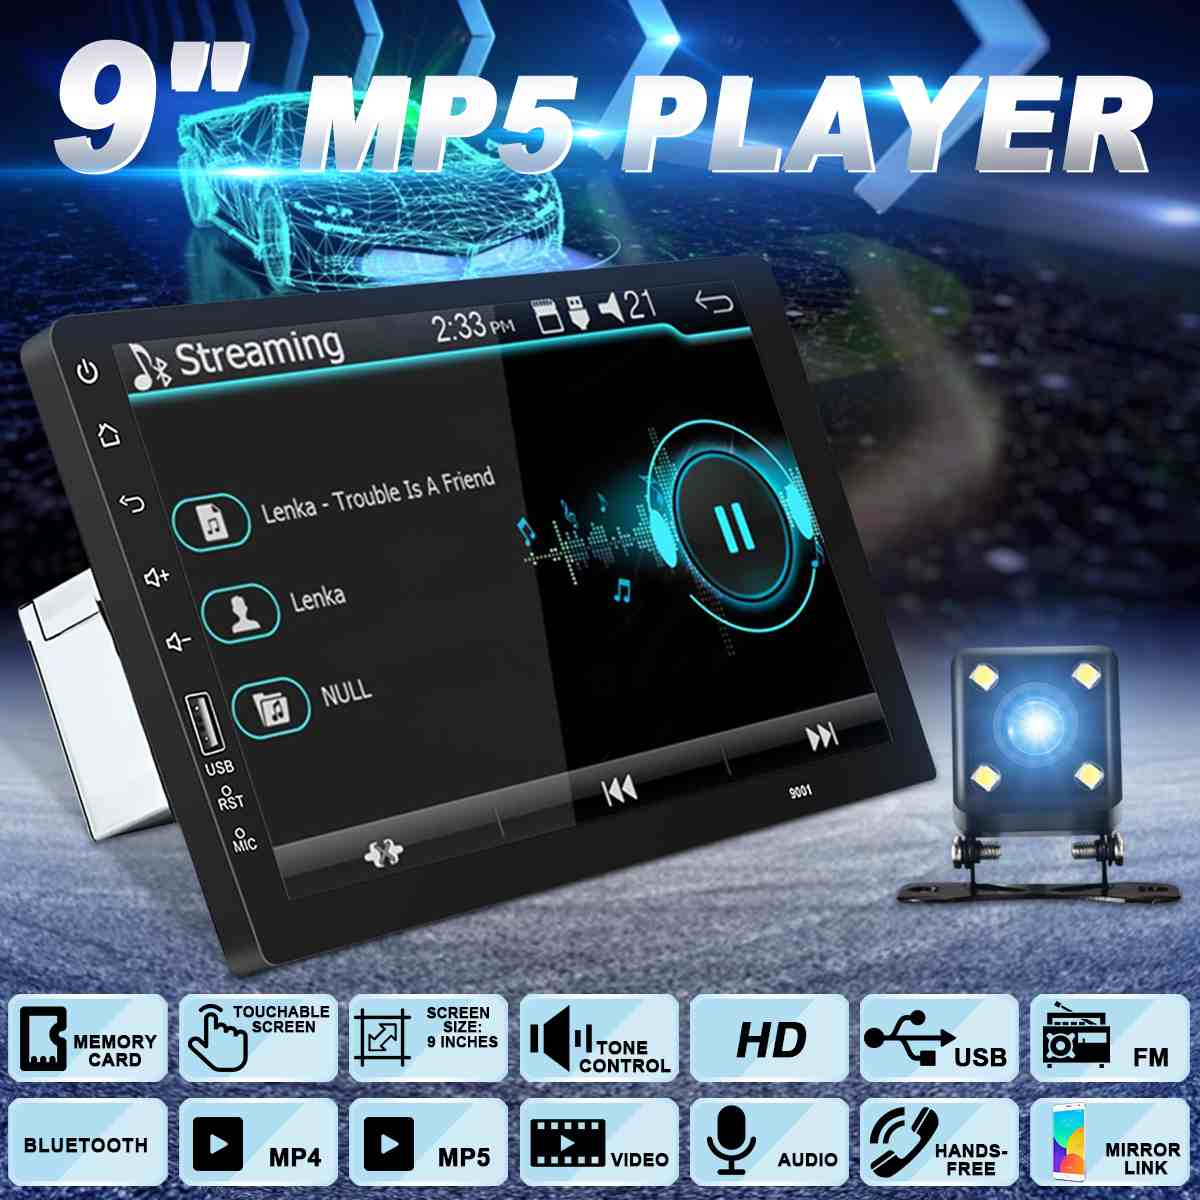 9 Inch 1DIN Universal Car Stereo MP3 MP4 MP5 Player 1080P Radio Indash FM bluetooth Touchable